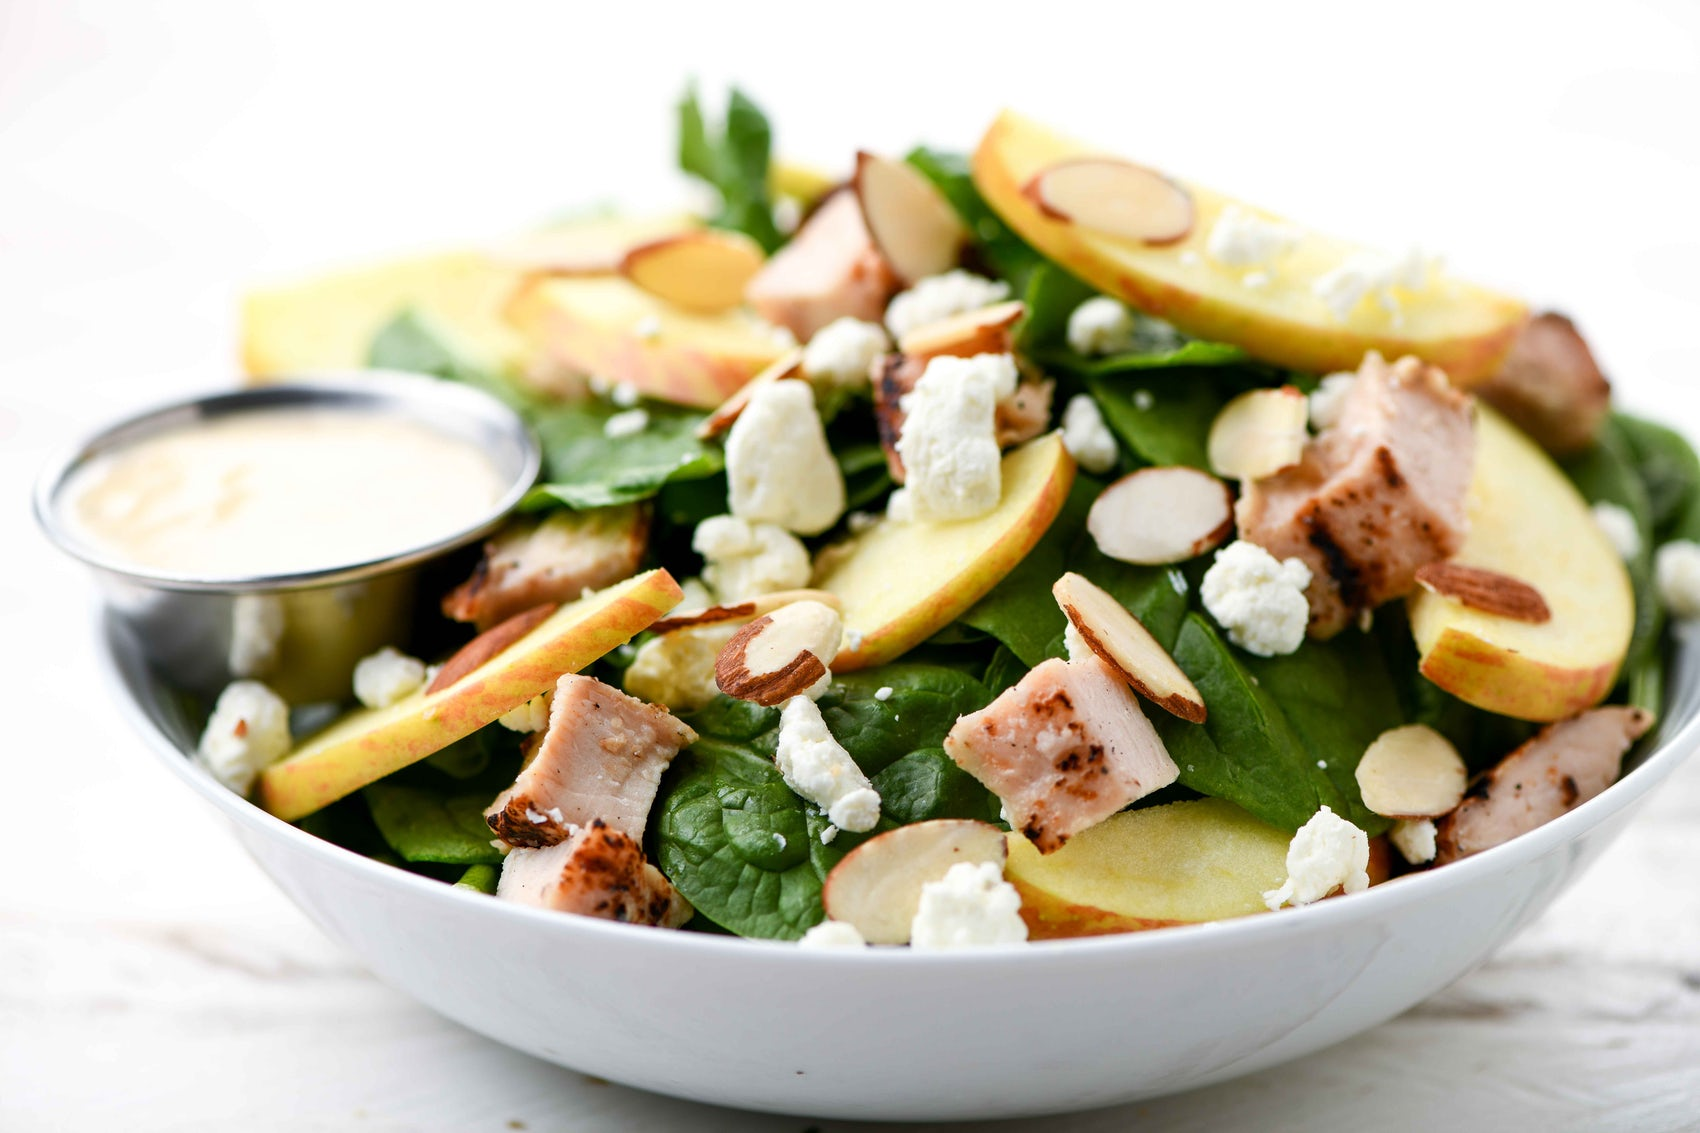 Apple, Chicken and Spinach Salad